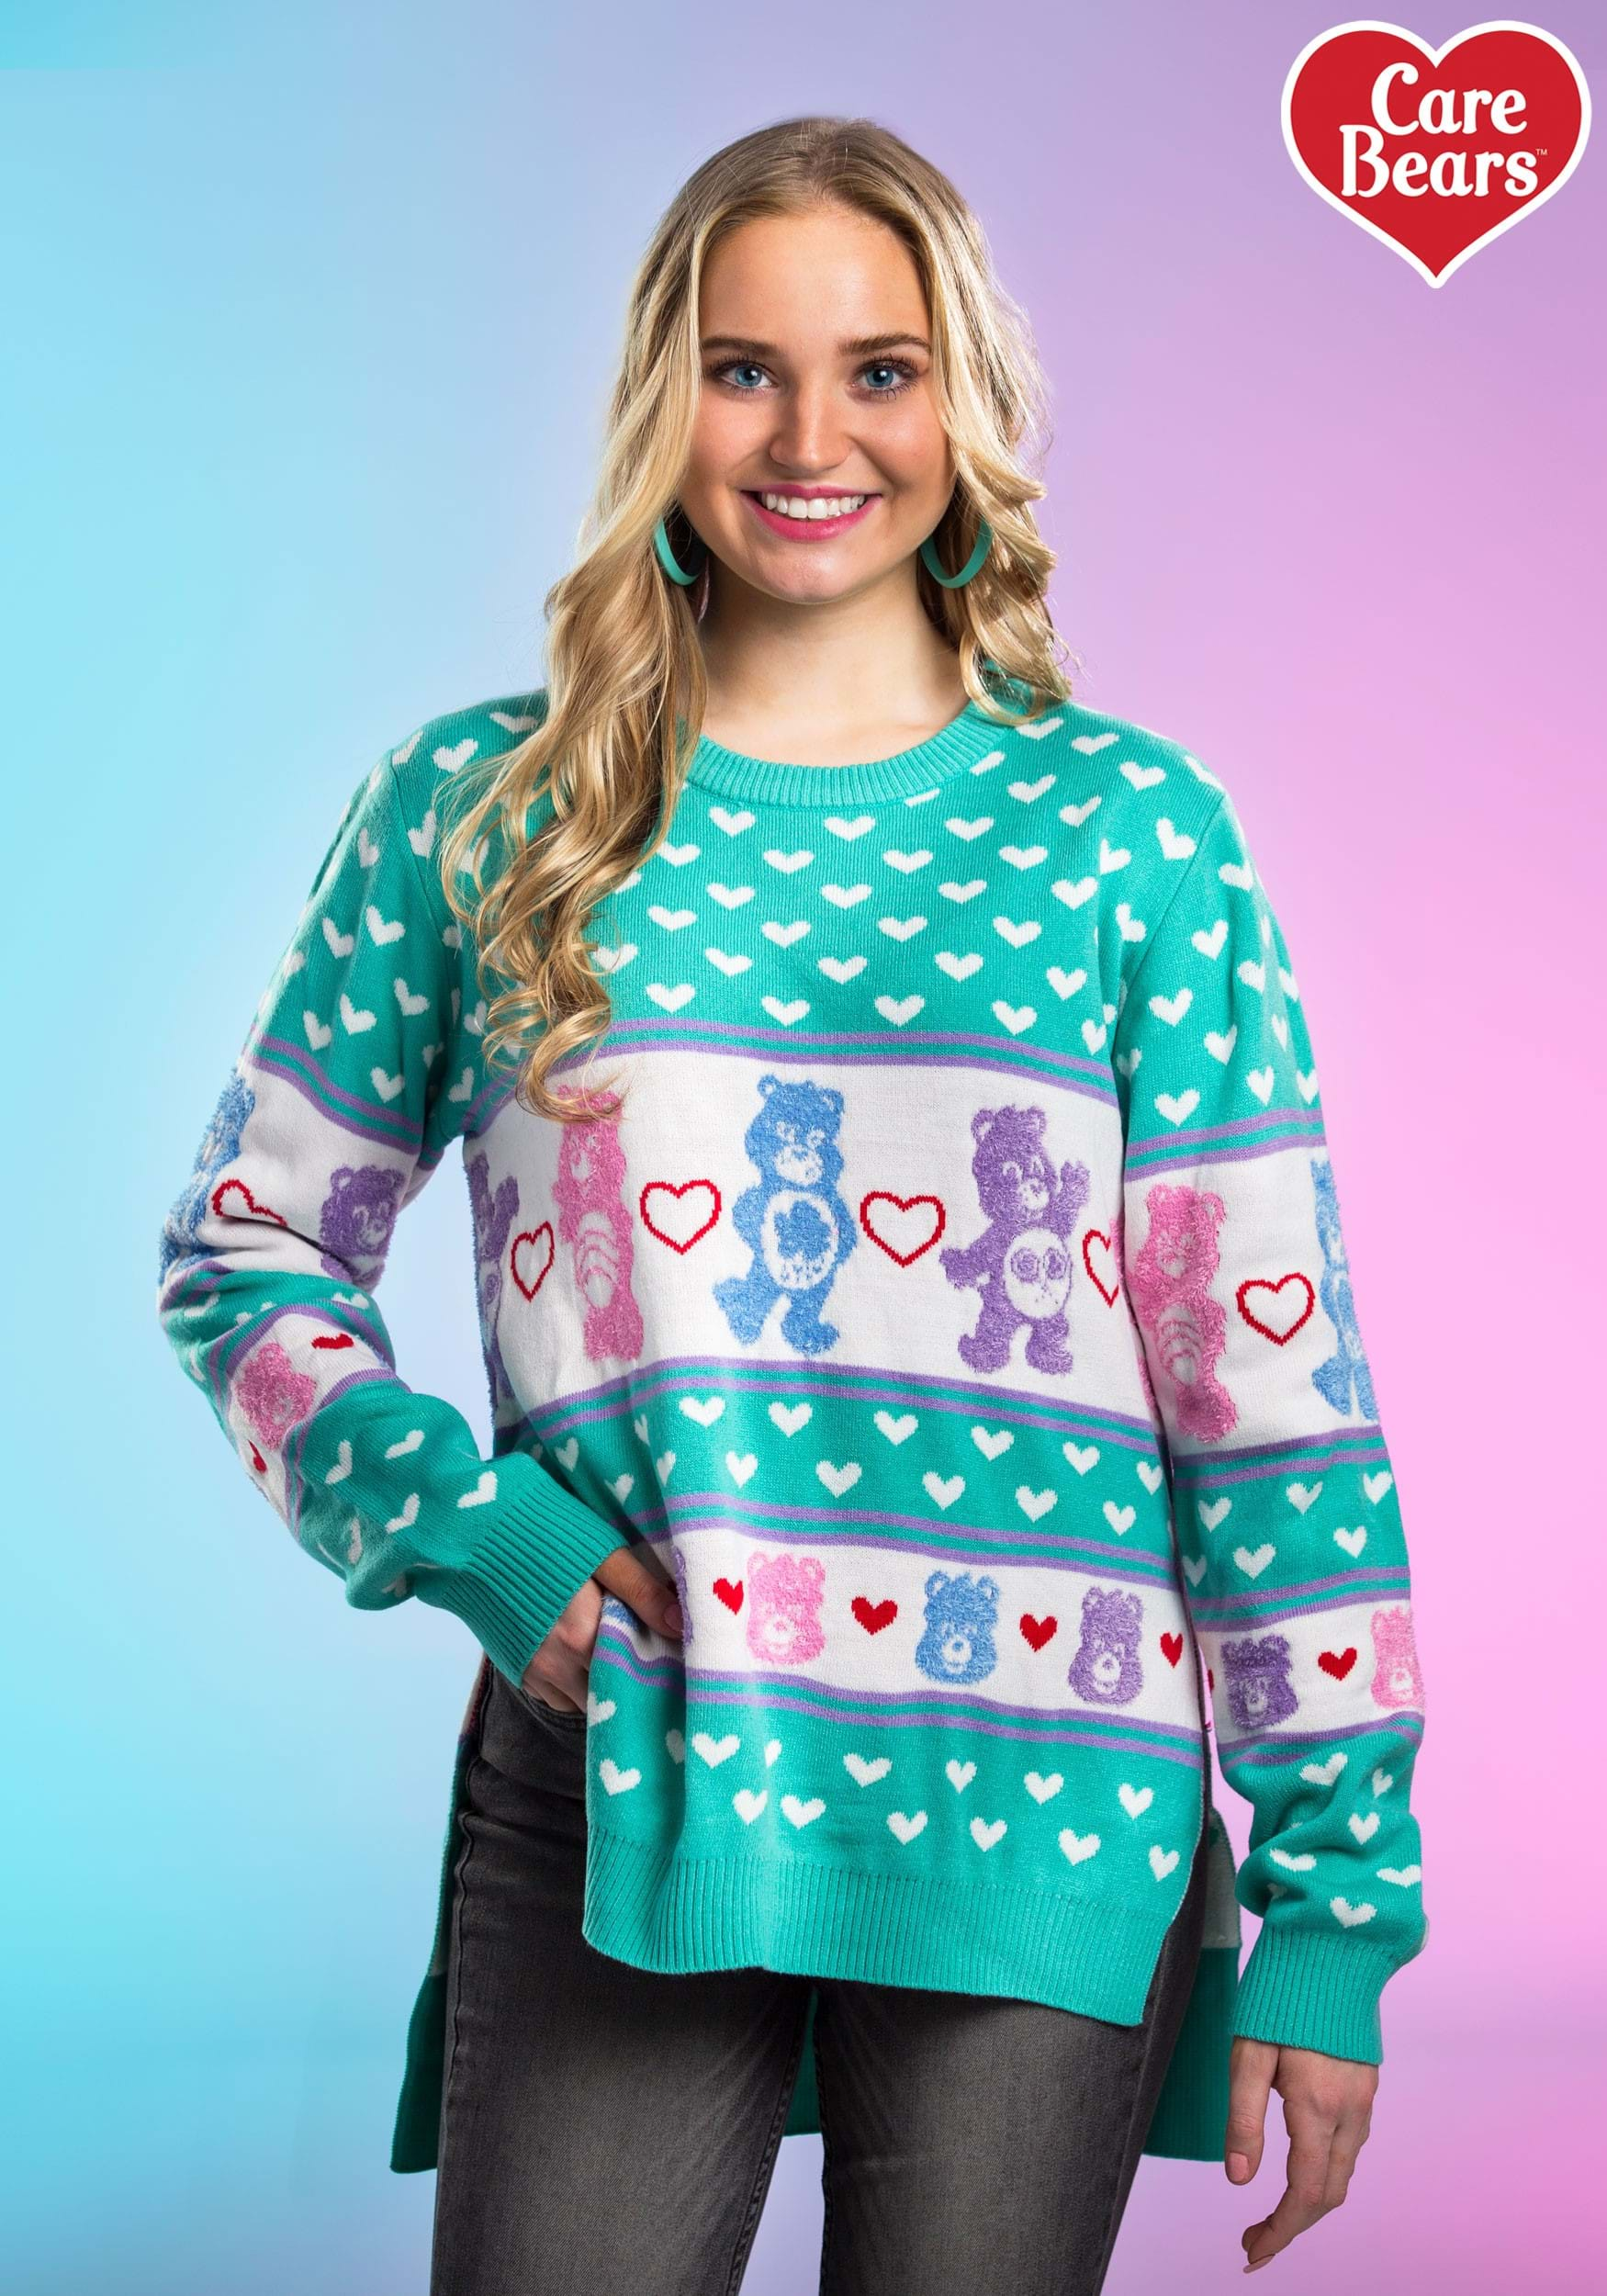 Hi Lo Care Bears Ugly Christmas Sweater For Women